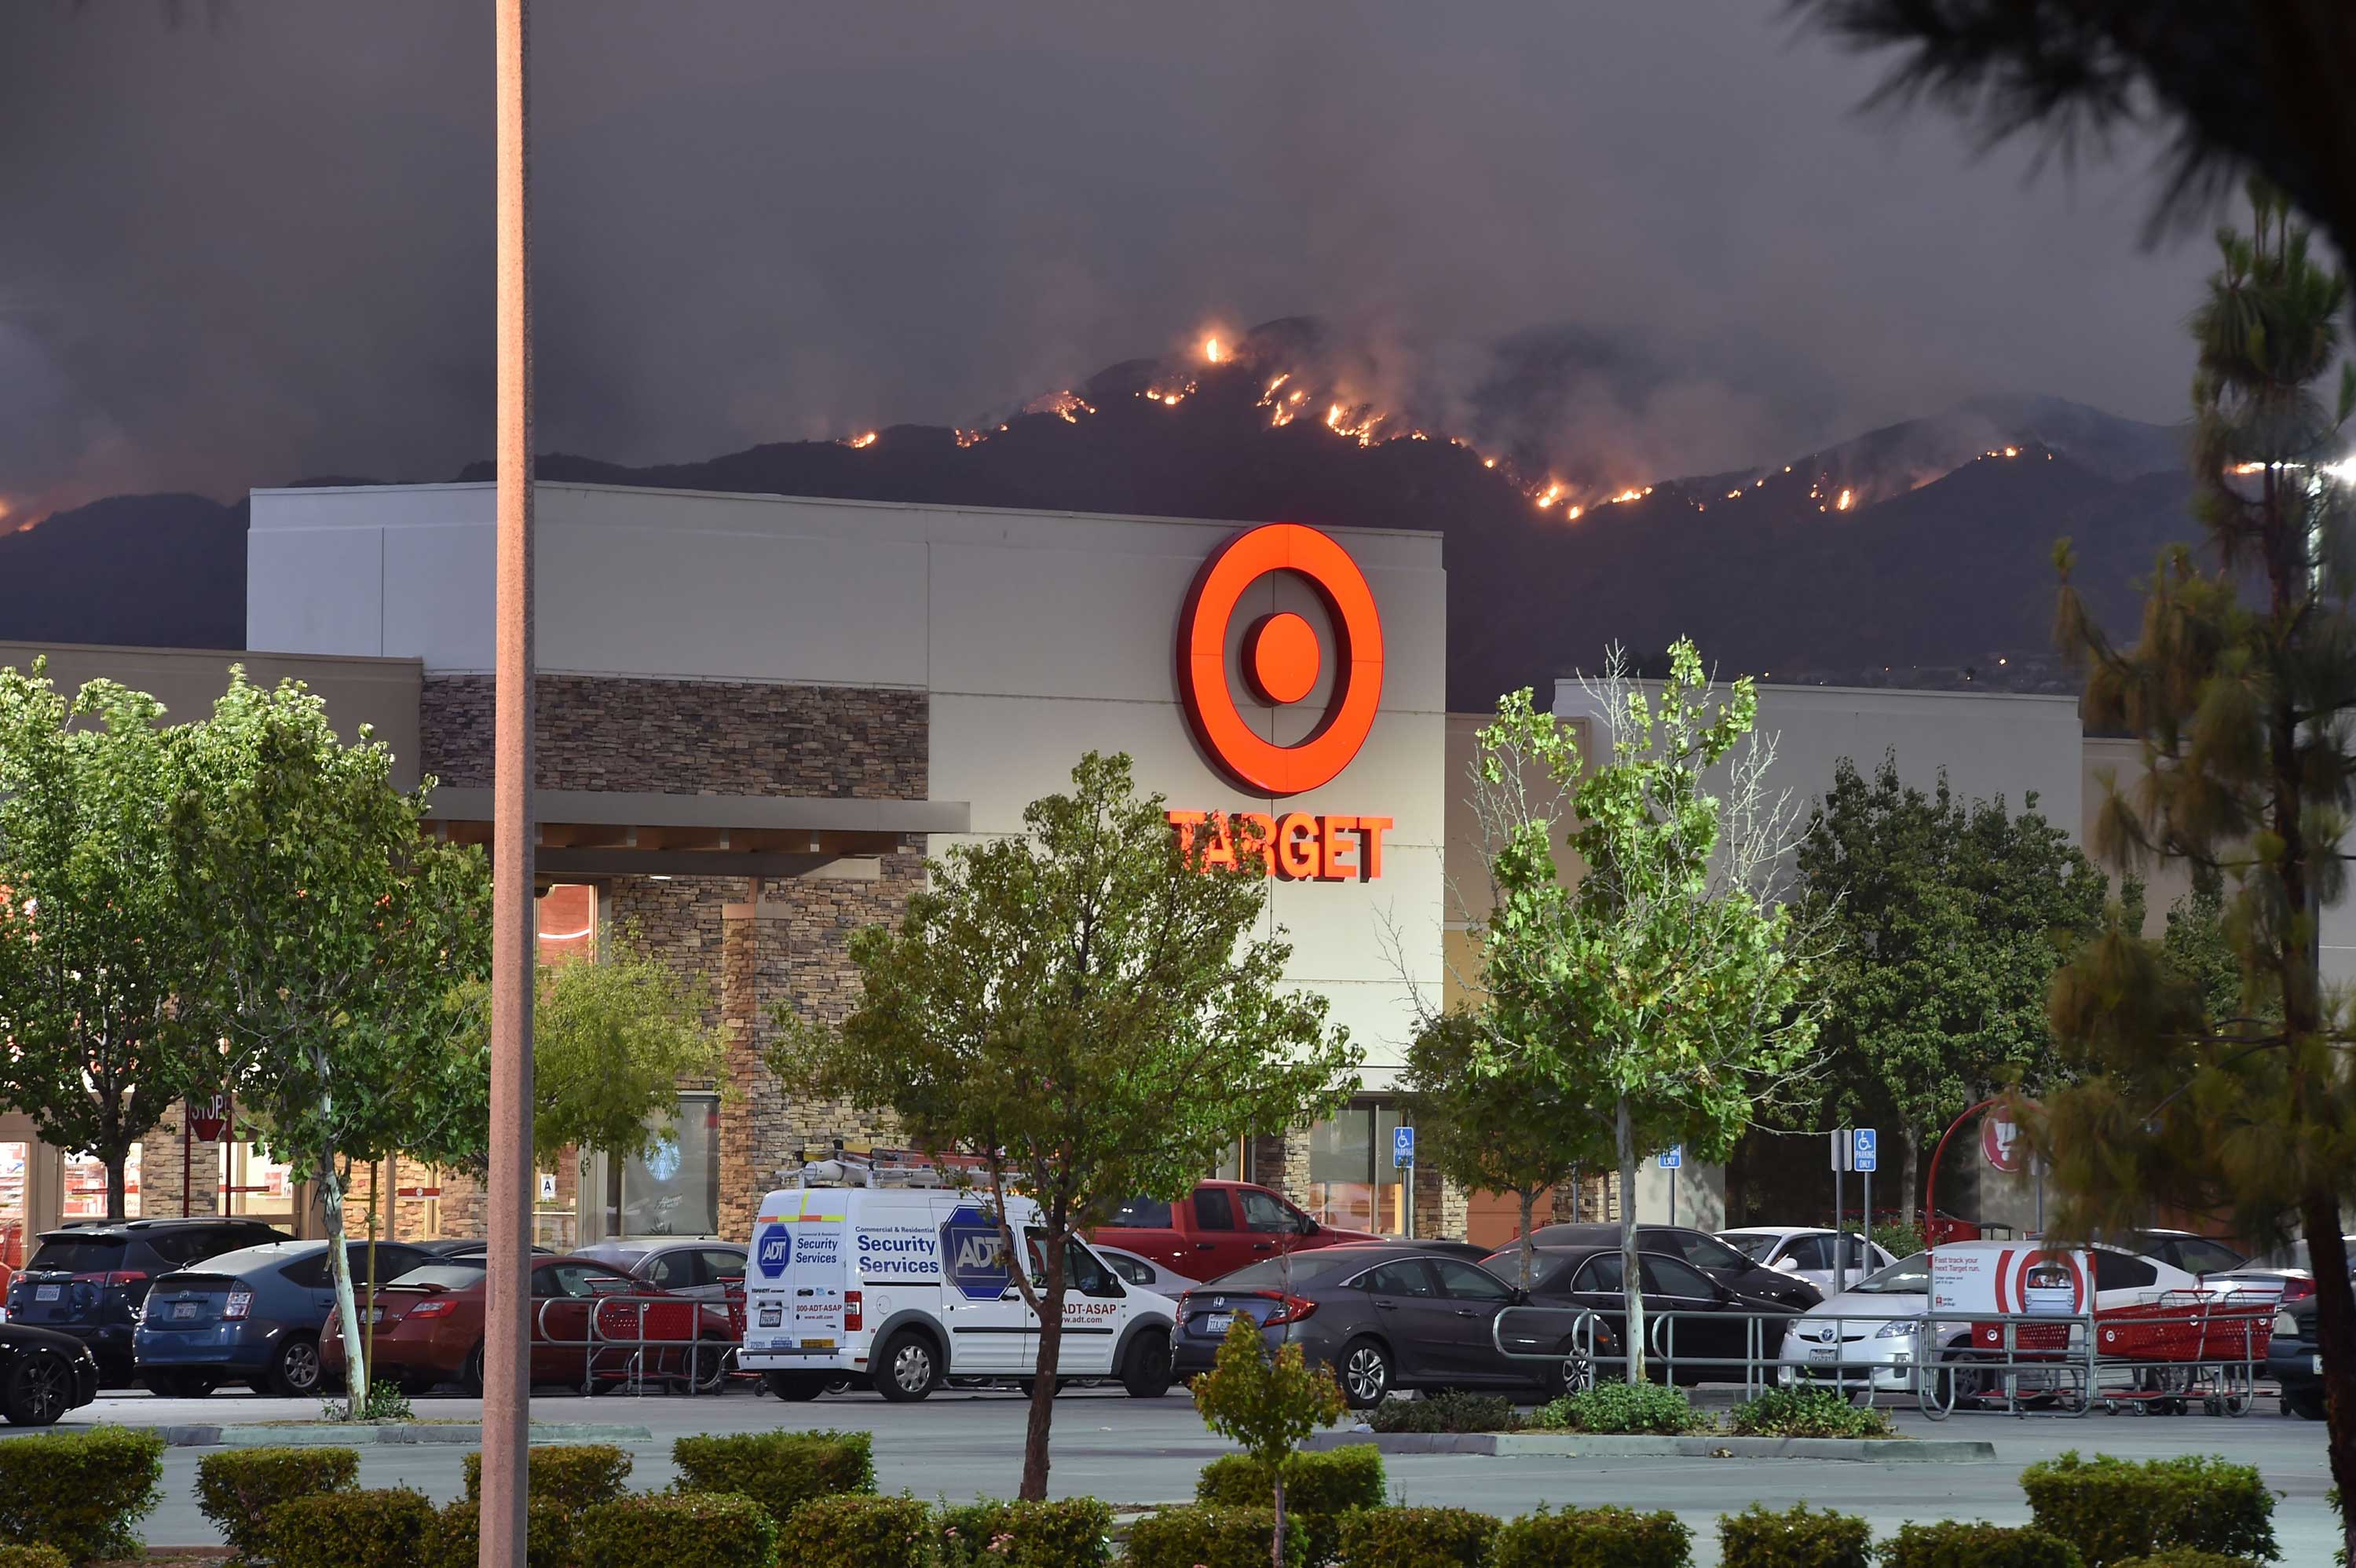 <div class='meta'><div class='origin-logo' data-origin='none'></div><span class='caption-text' data-credit='ROBYN BECK/AFP/Getty Images'>The Holy Fire burns in the distant behind a Target store, near Lake Elsinore, California on August 8, 2018.</span></div>